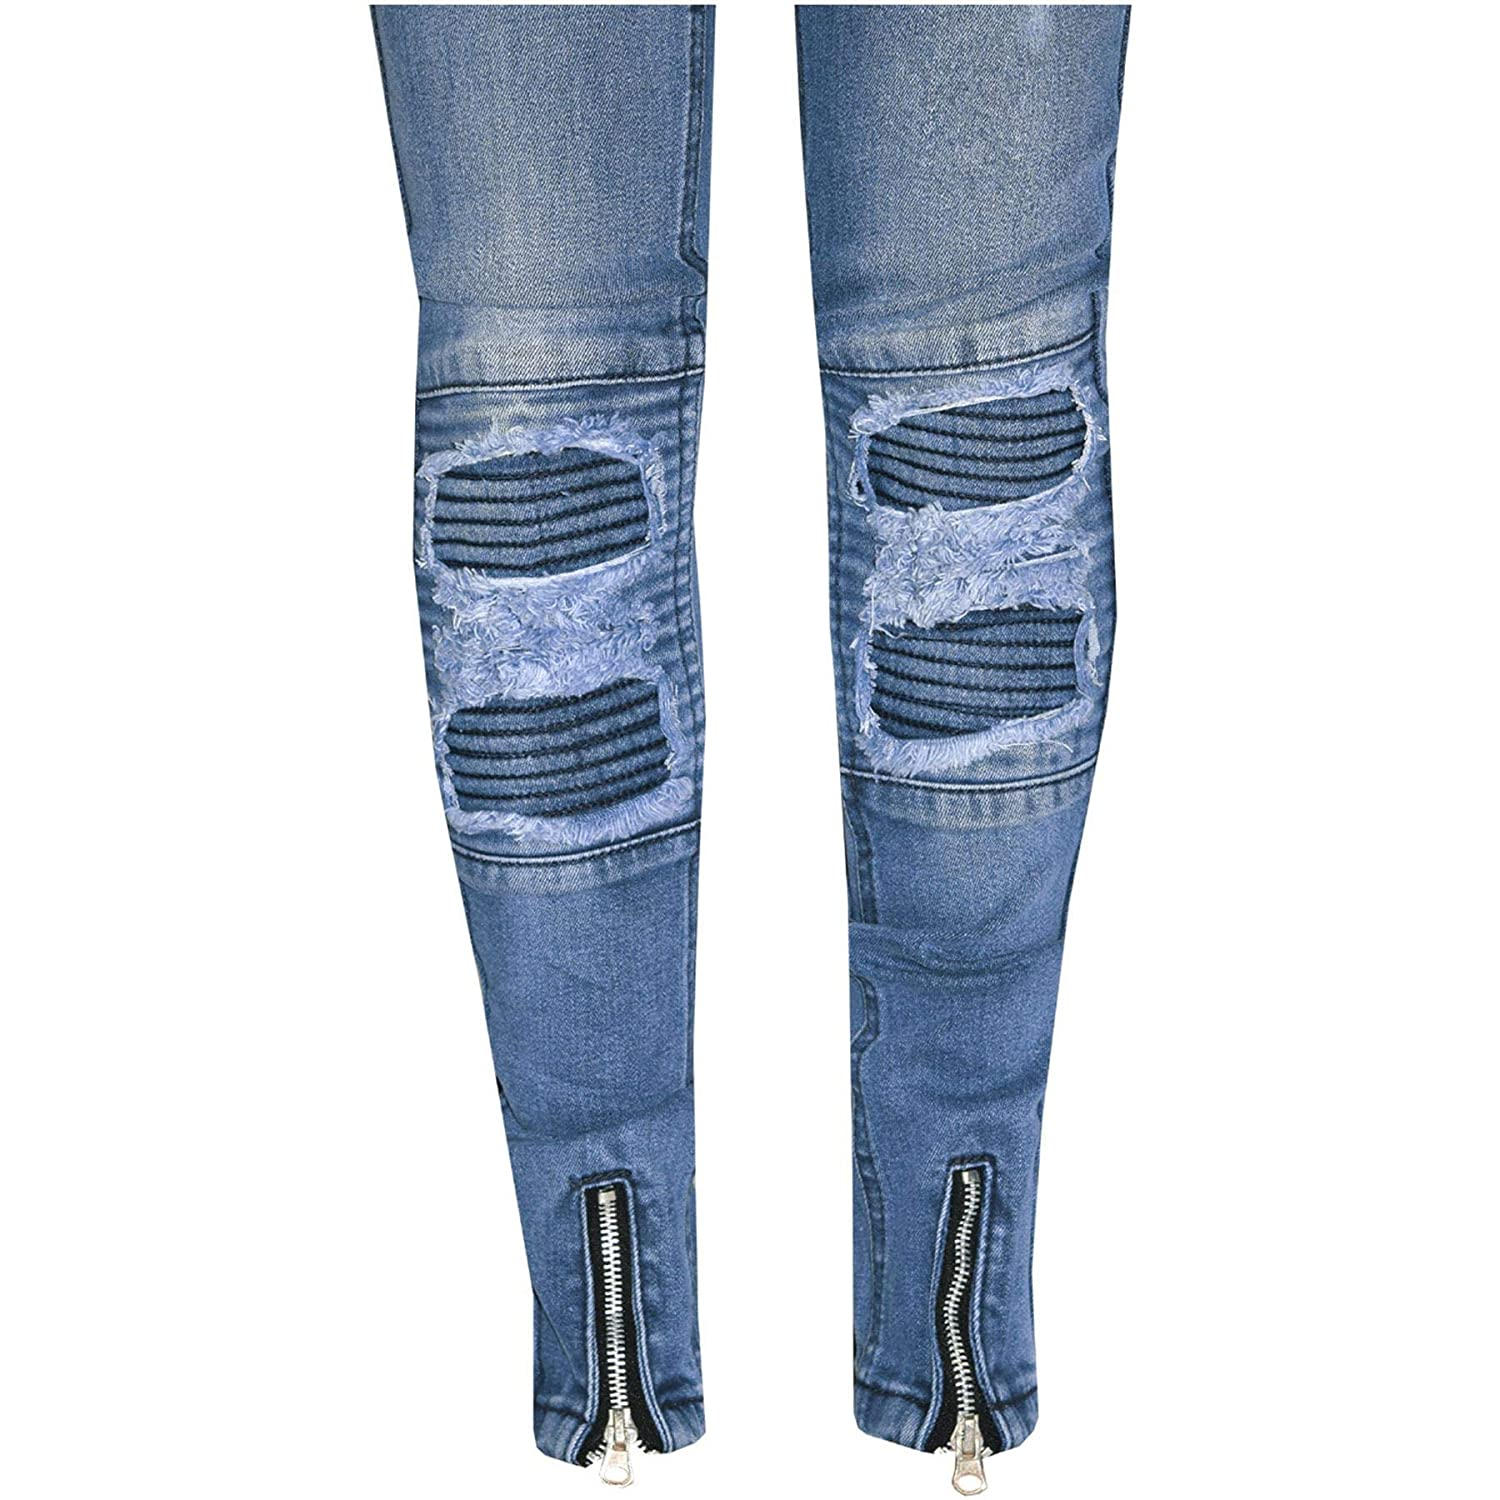 A2Z 4 Kids Kids Boys Stretchy Jeans Designers Mid Blue Ripped Denim Skinny Pants Fit Trousers New Age 5 6 7 8 9 10 11 12 13 Years